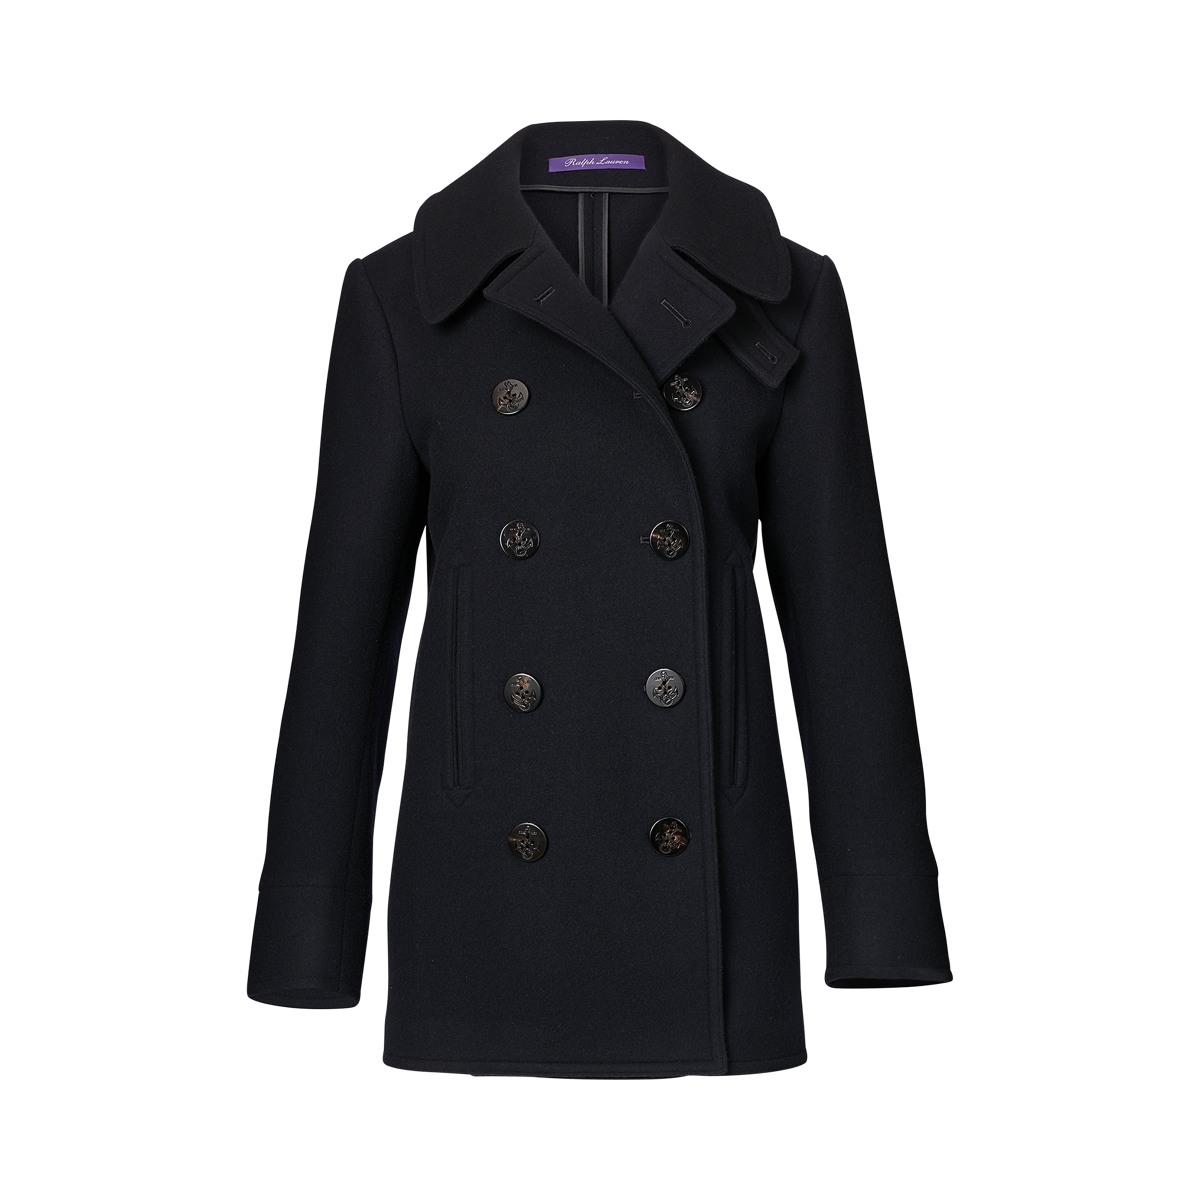 43df2a219 The Peacoat